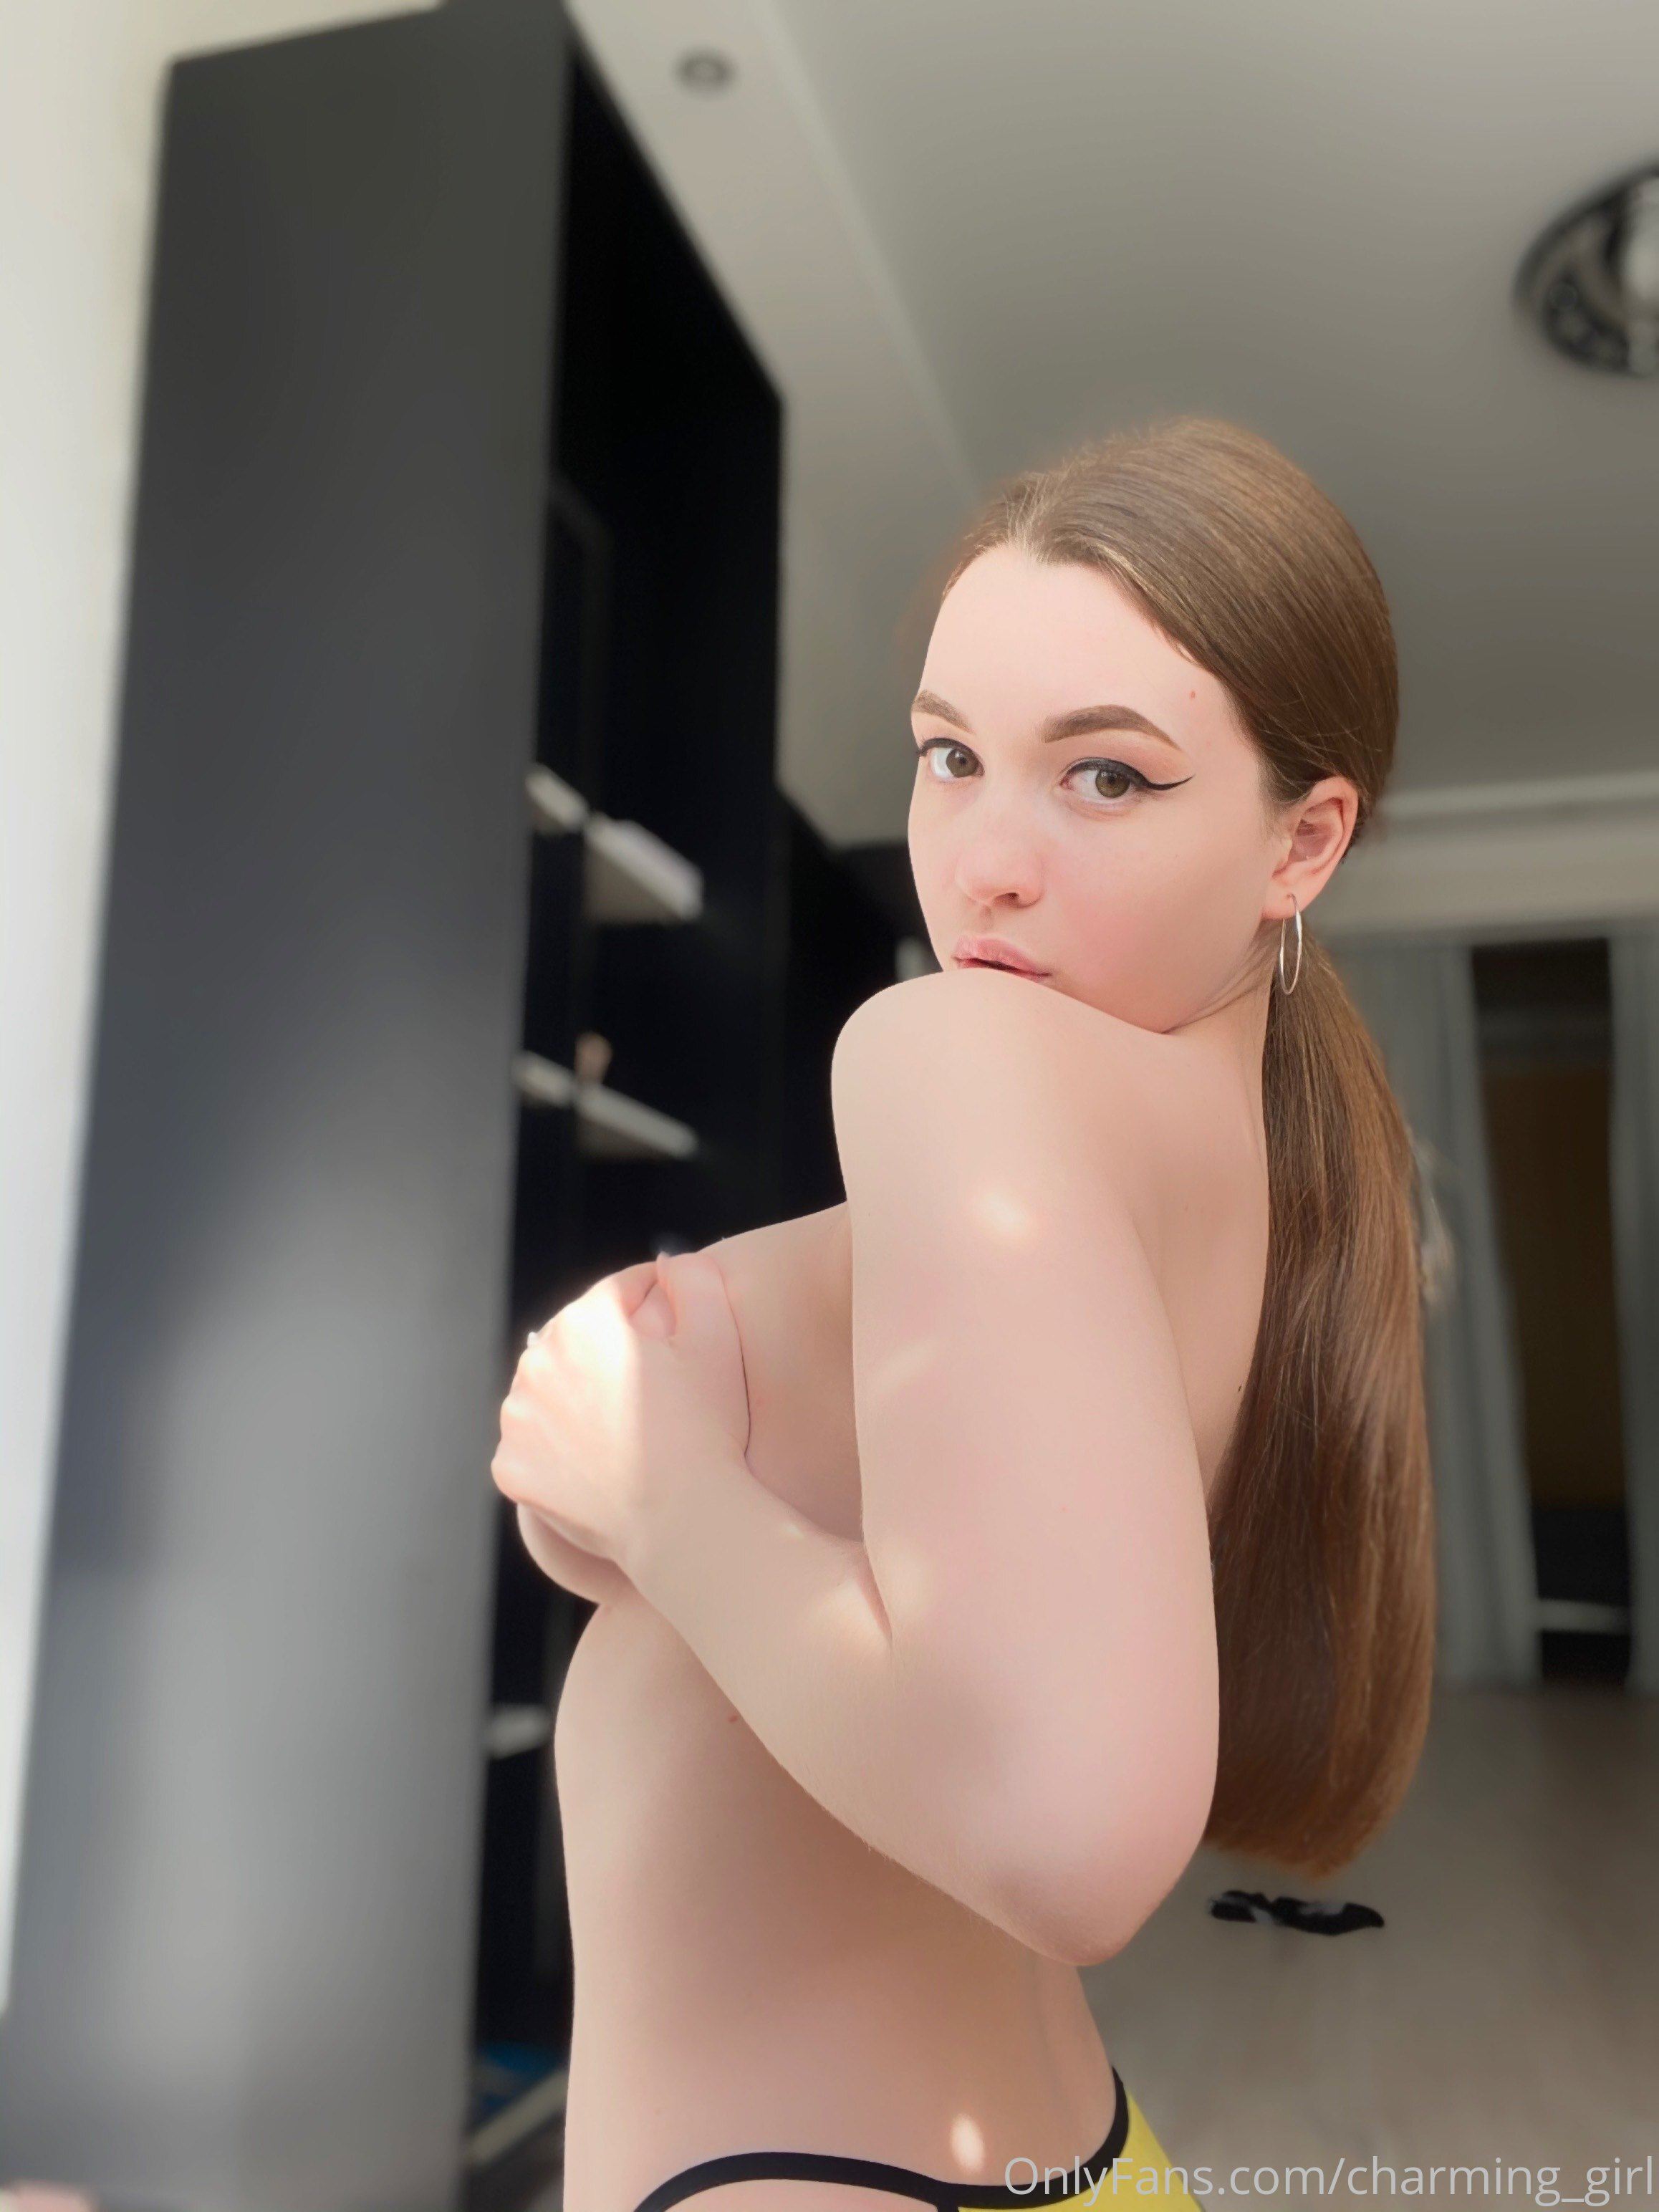 Charming Girl, Onlyfans Nudes Leaks 0011